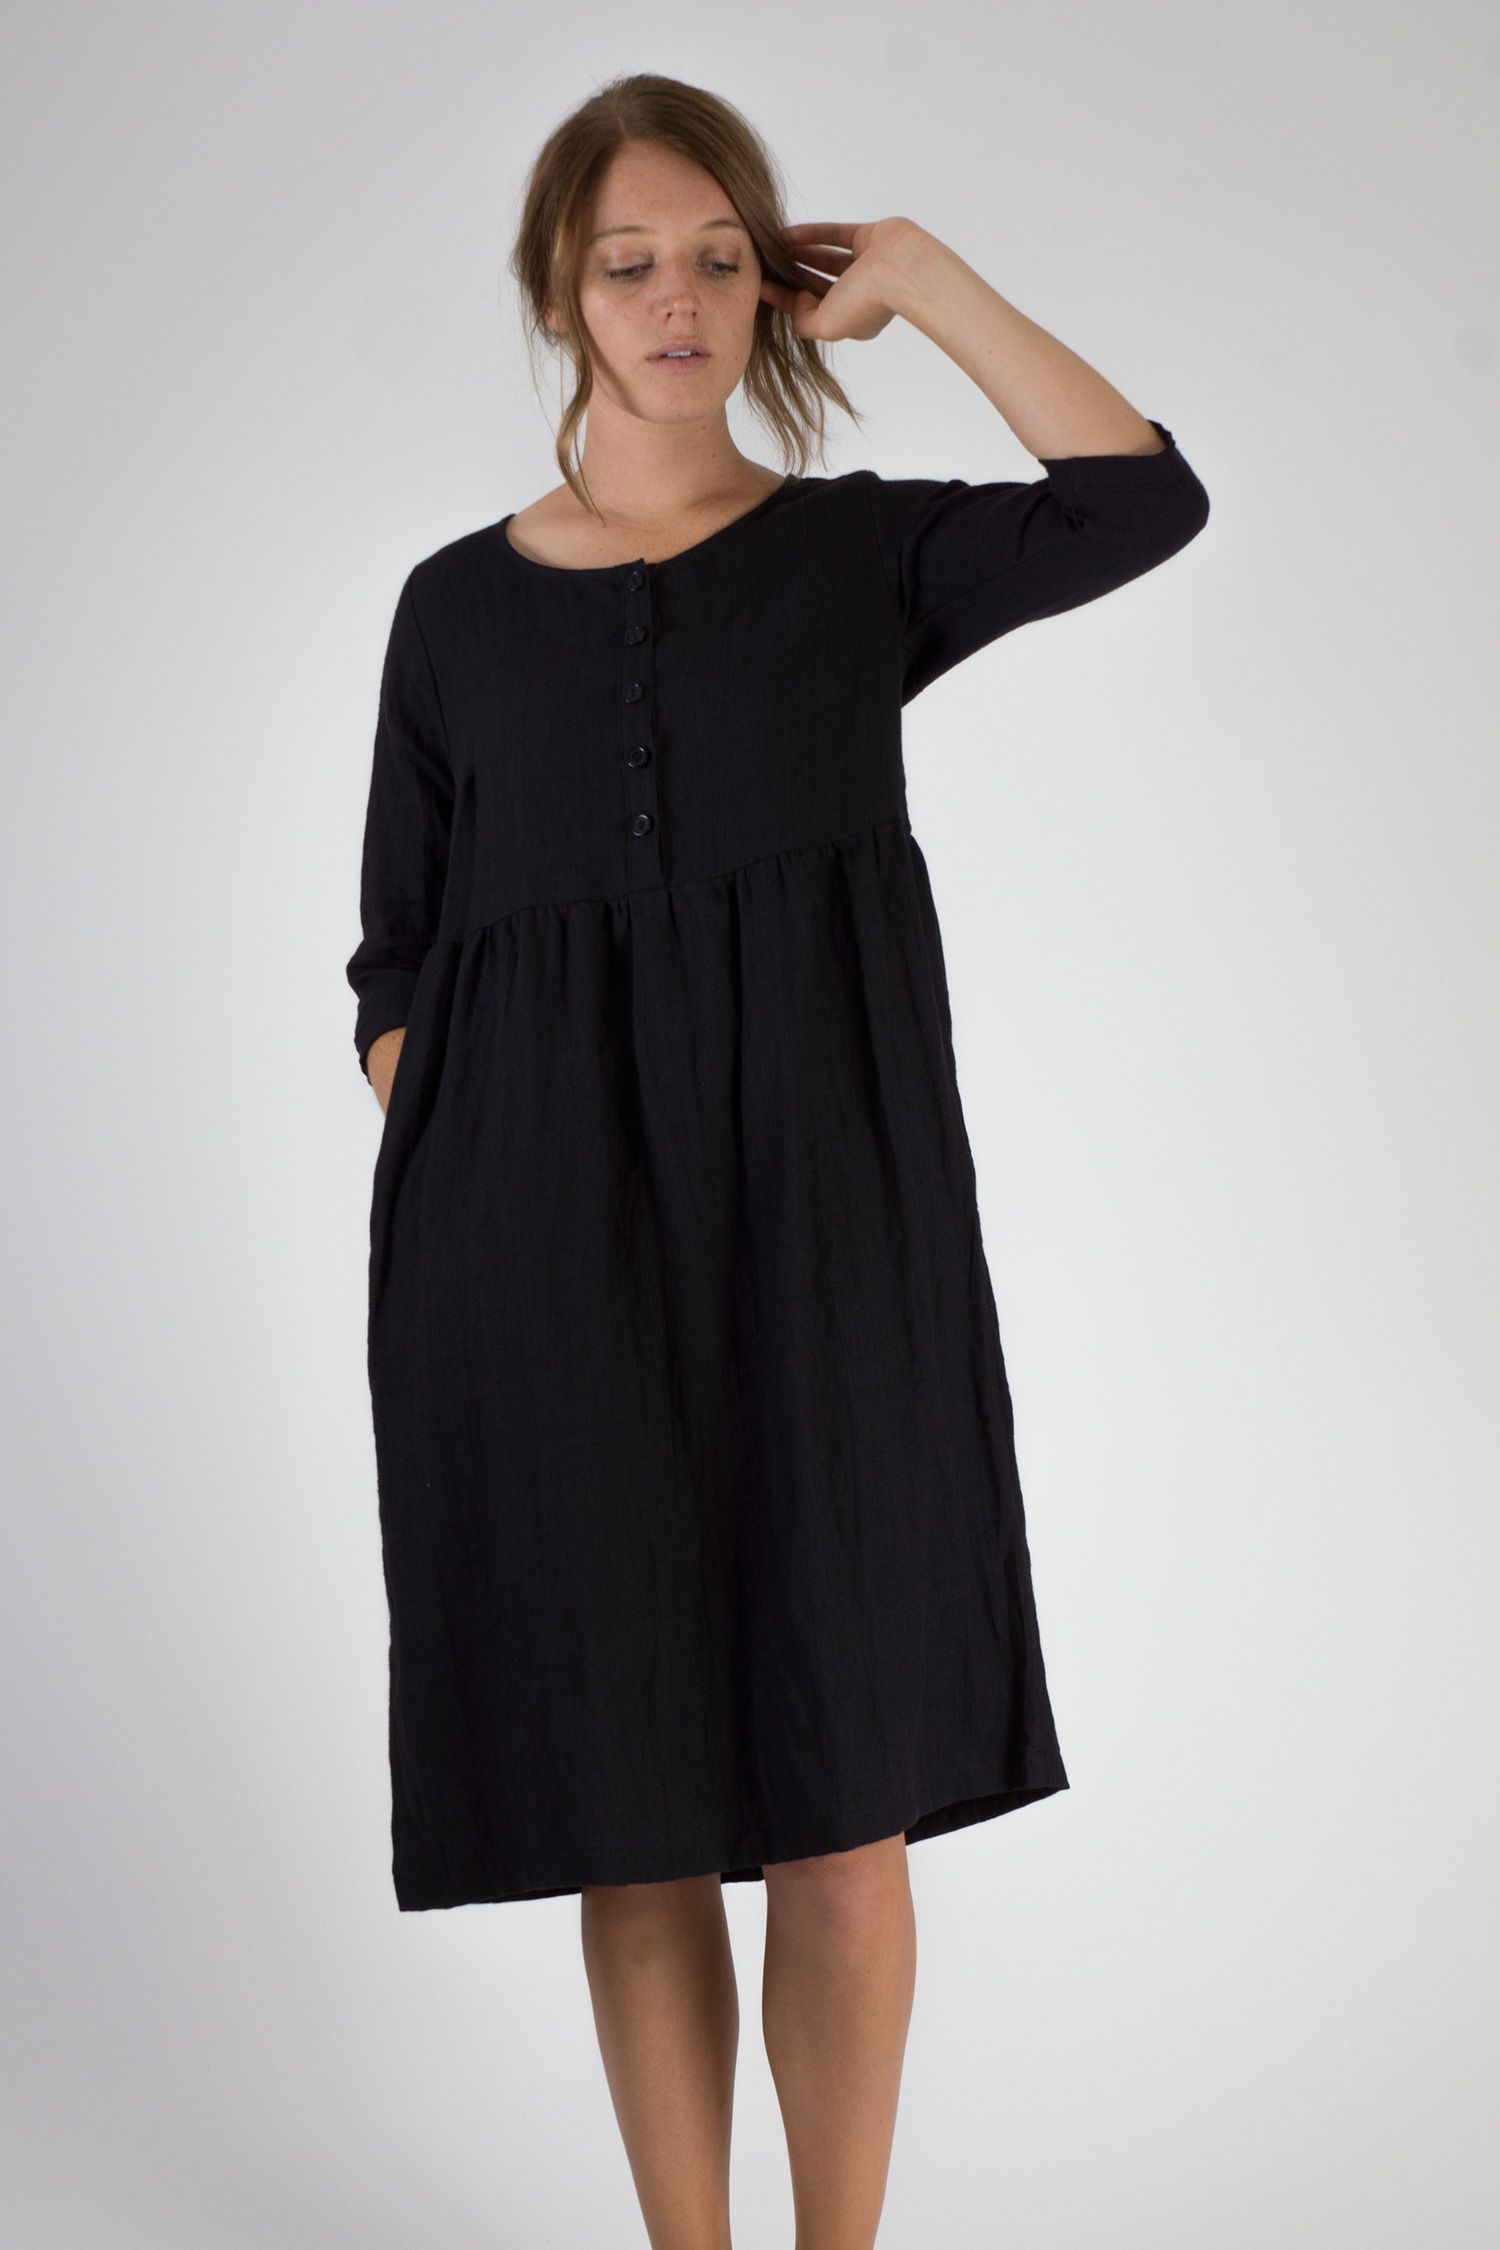 Black Linen Dress In A Midi Length With 3 4 Length Sleeves Fully Functioning Black Buttons And Dresses Black Linen Dress Linen Dresses [ 2250 x 1500 Pixel ]